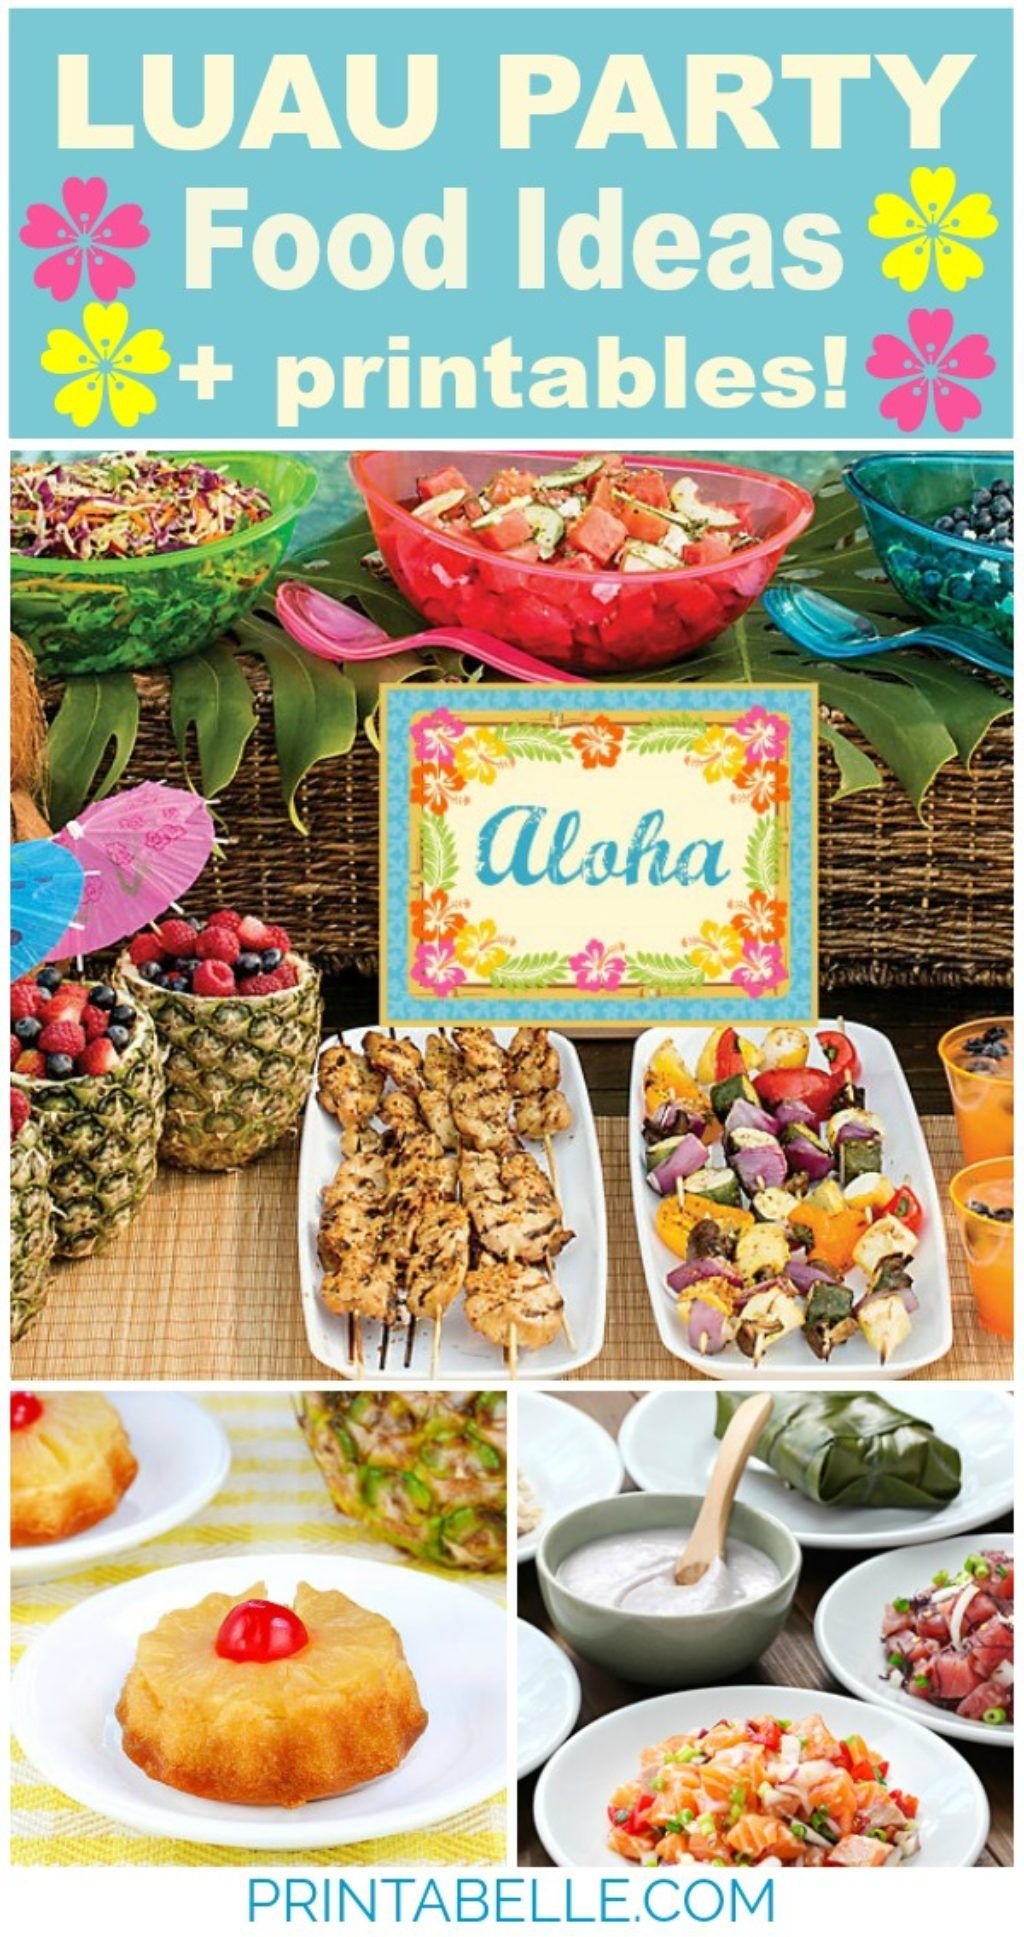 luau party food (+printables!) – free party printables at